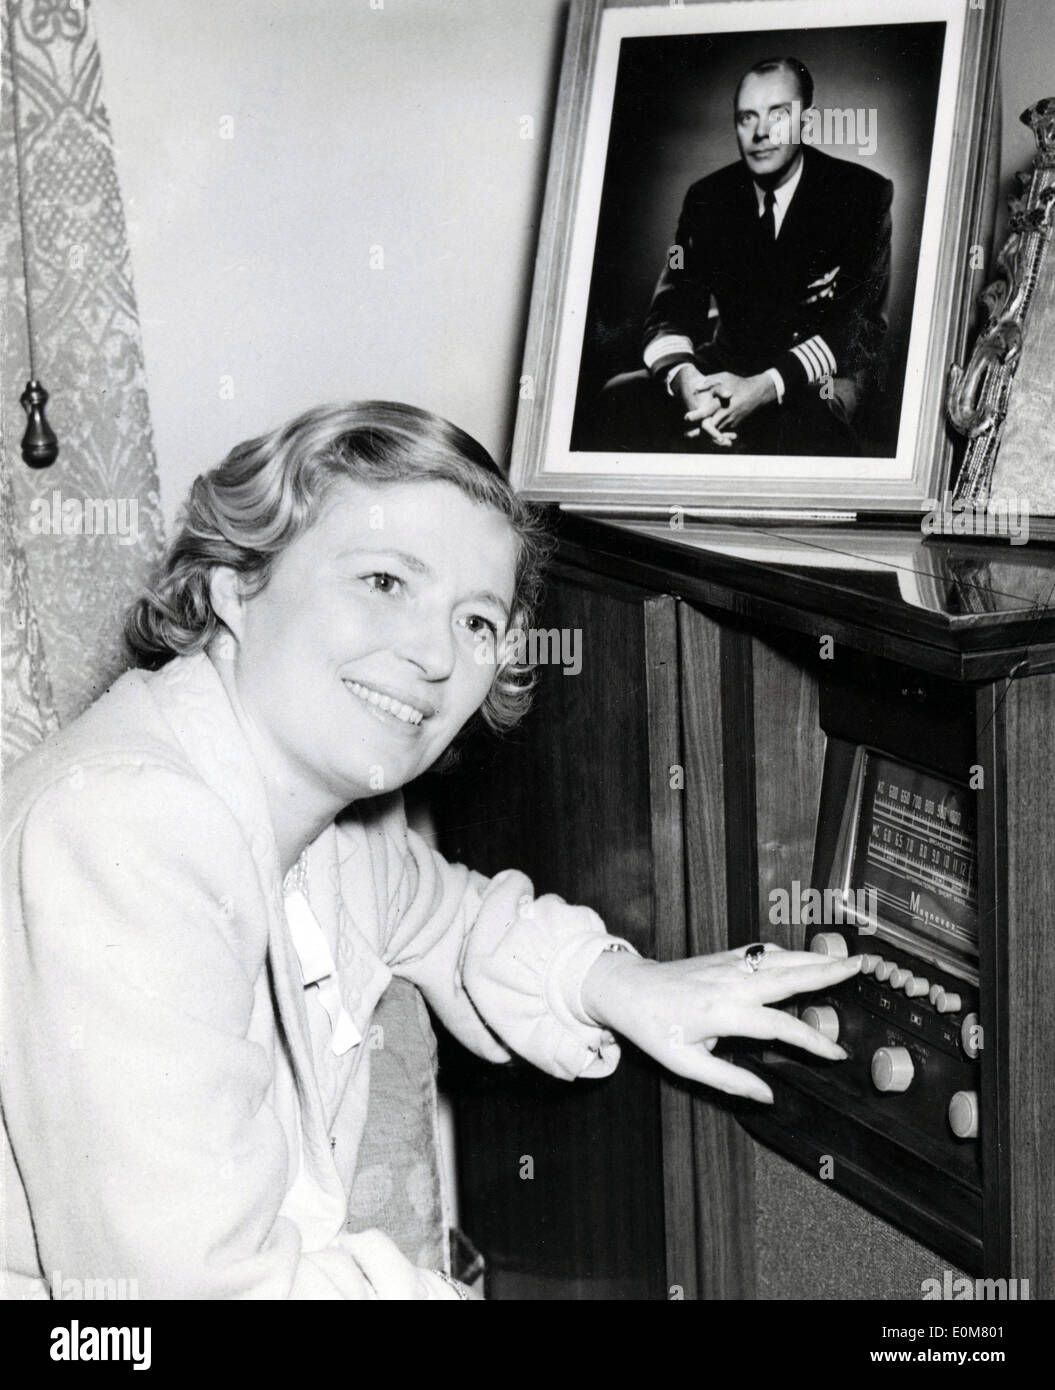 Nov. 24, 1953 - London, England, U.K. - Wife of Captain A.C. Loraine, MARY LORAINE still wearing her nightgown and housecoat listens to the radio, while police have sealed her bedroom to search for clues after a large robbery. - Stock Image